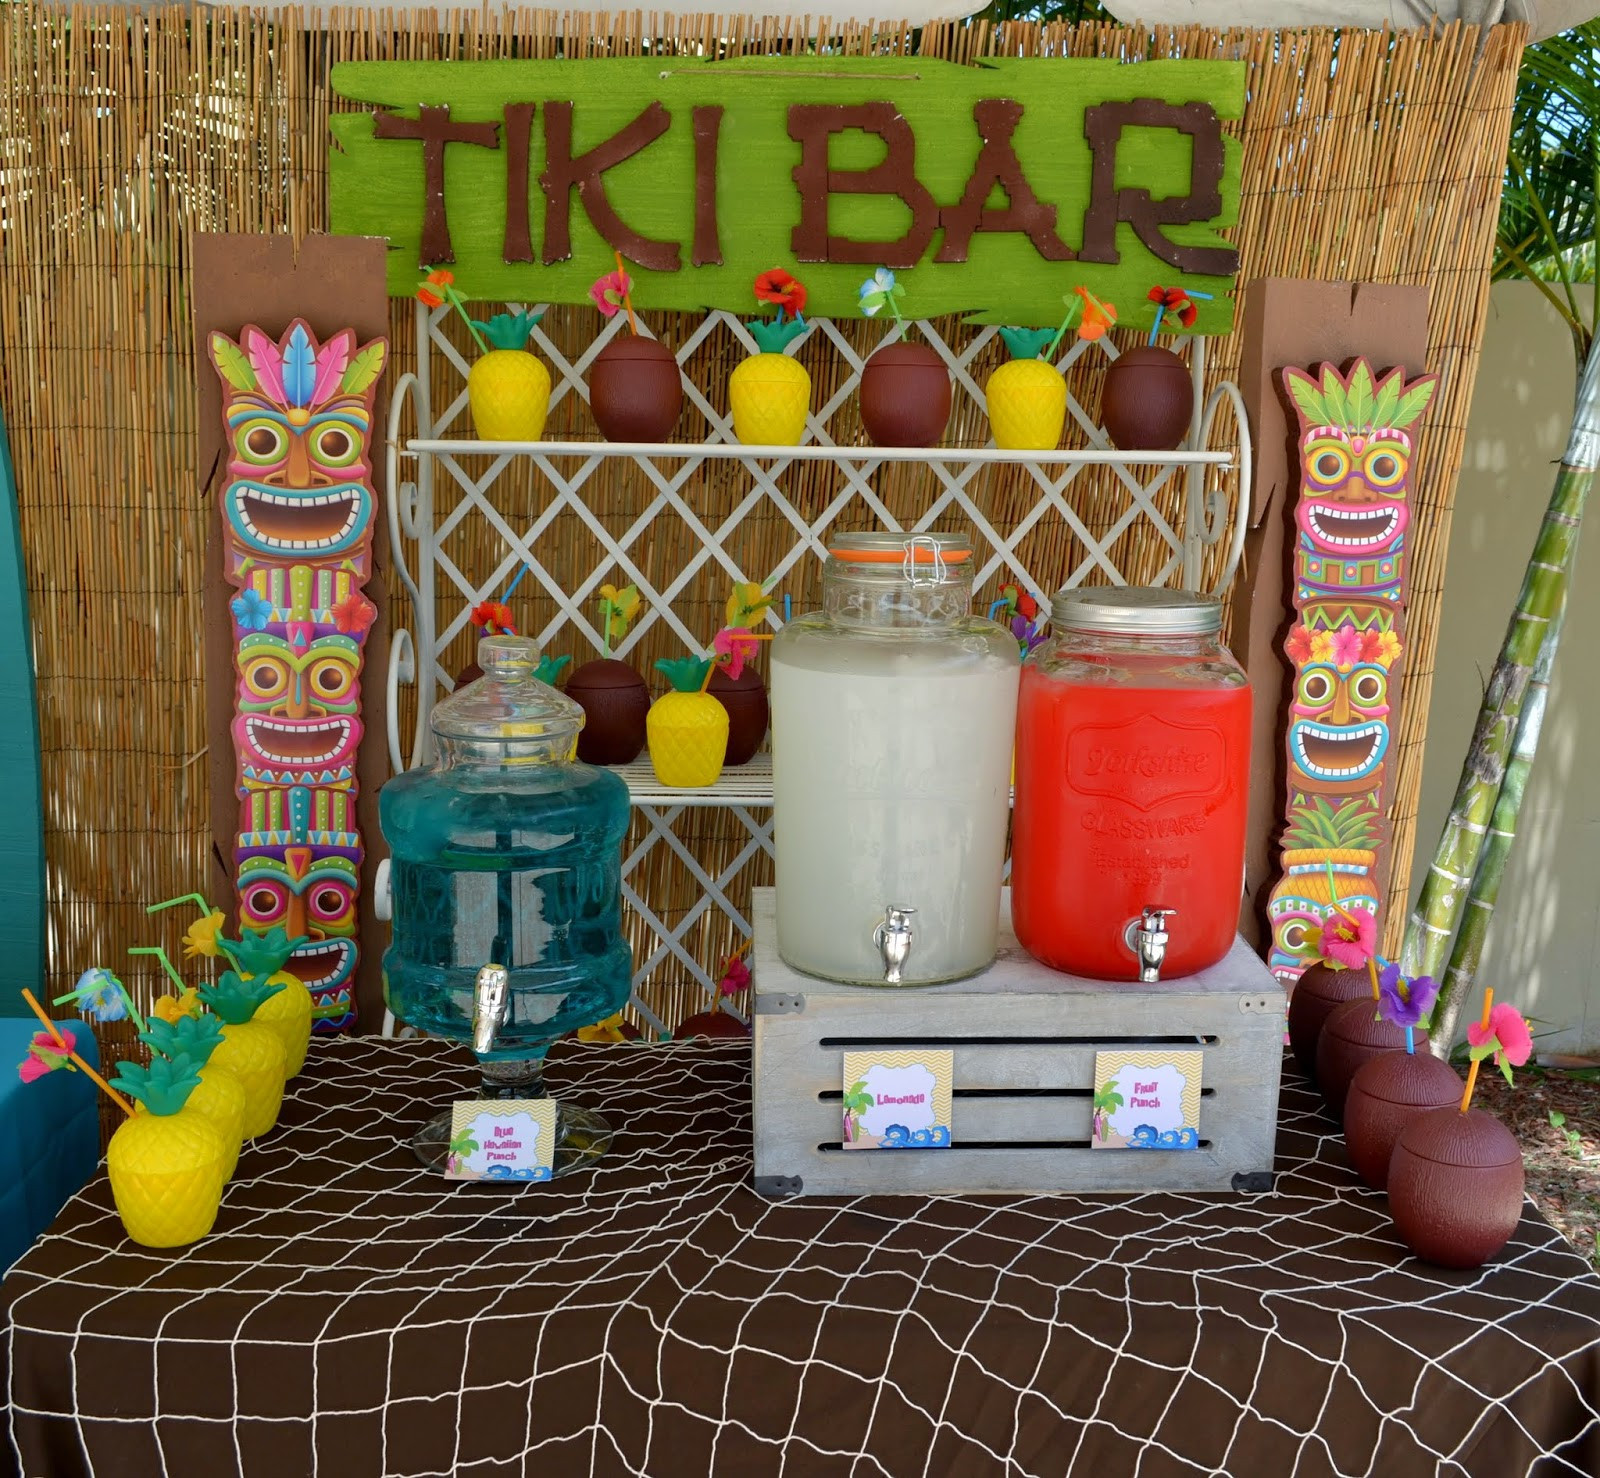 Teen Pool Party Ideas  Partylicious Events PR Teen Beach Movie Pool Party